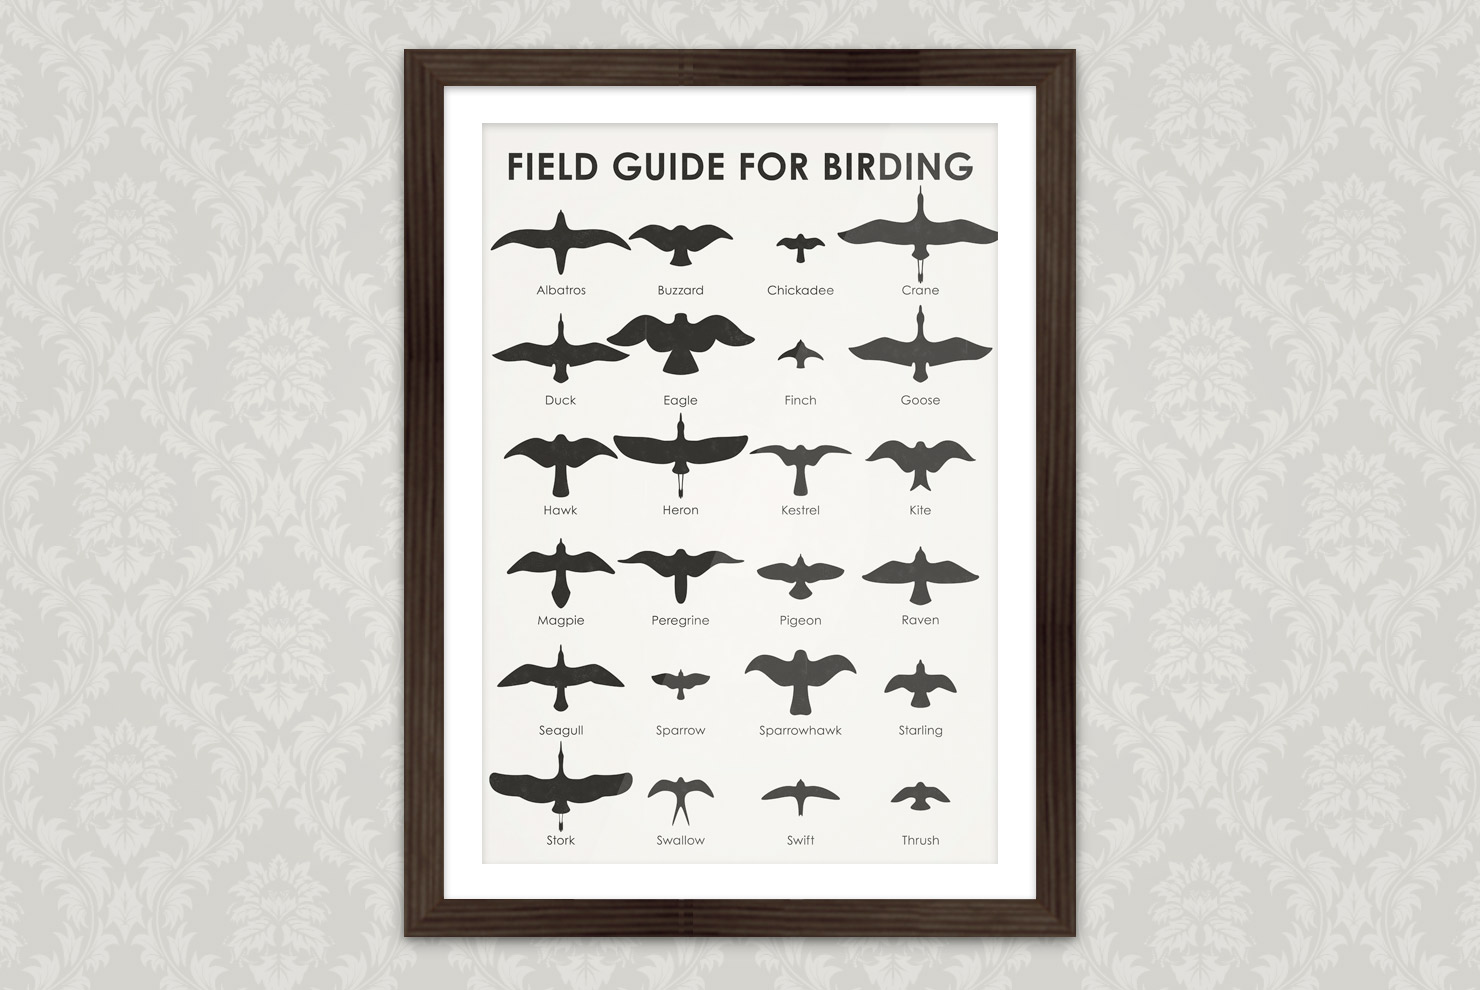 Poster with an infographic as identification sheet for common flying bird silhouettes auch as albatros, buzzard, chickadee, crane, duck, eagle, finch, goose, hawk, heron, kestrel, kite, magpie, peregrine, pigeon, raven, seagull, sparrow, sparrowhawk, starling, stork, swallow, swift, thrush